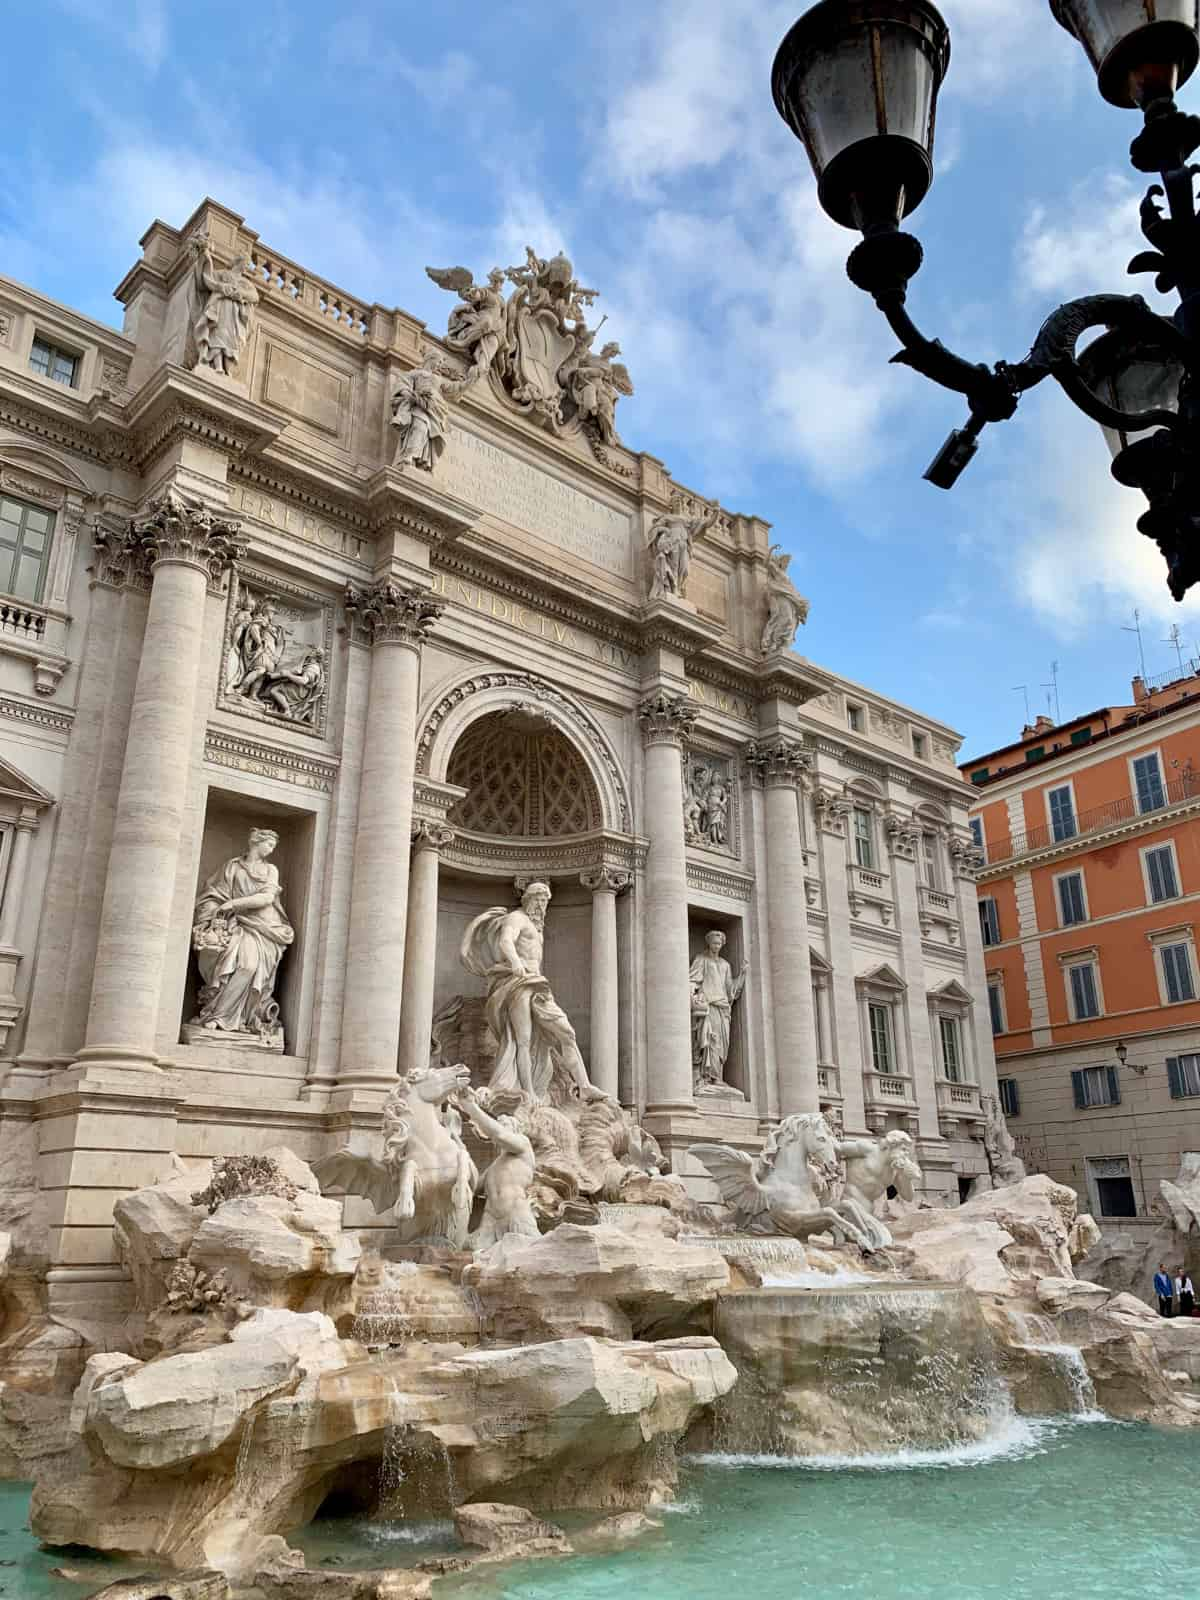 The Trevi Fountain...rightfully famous and one of the best photo spots in Rome